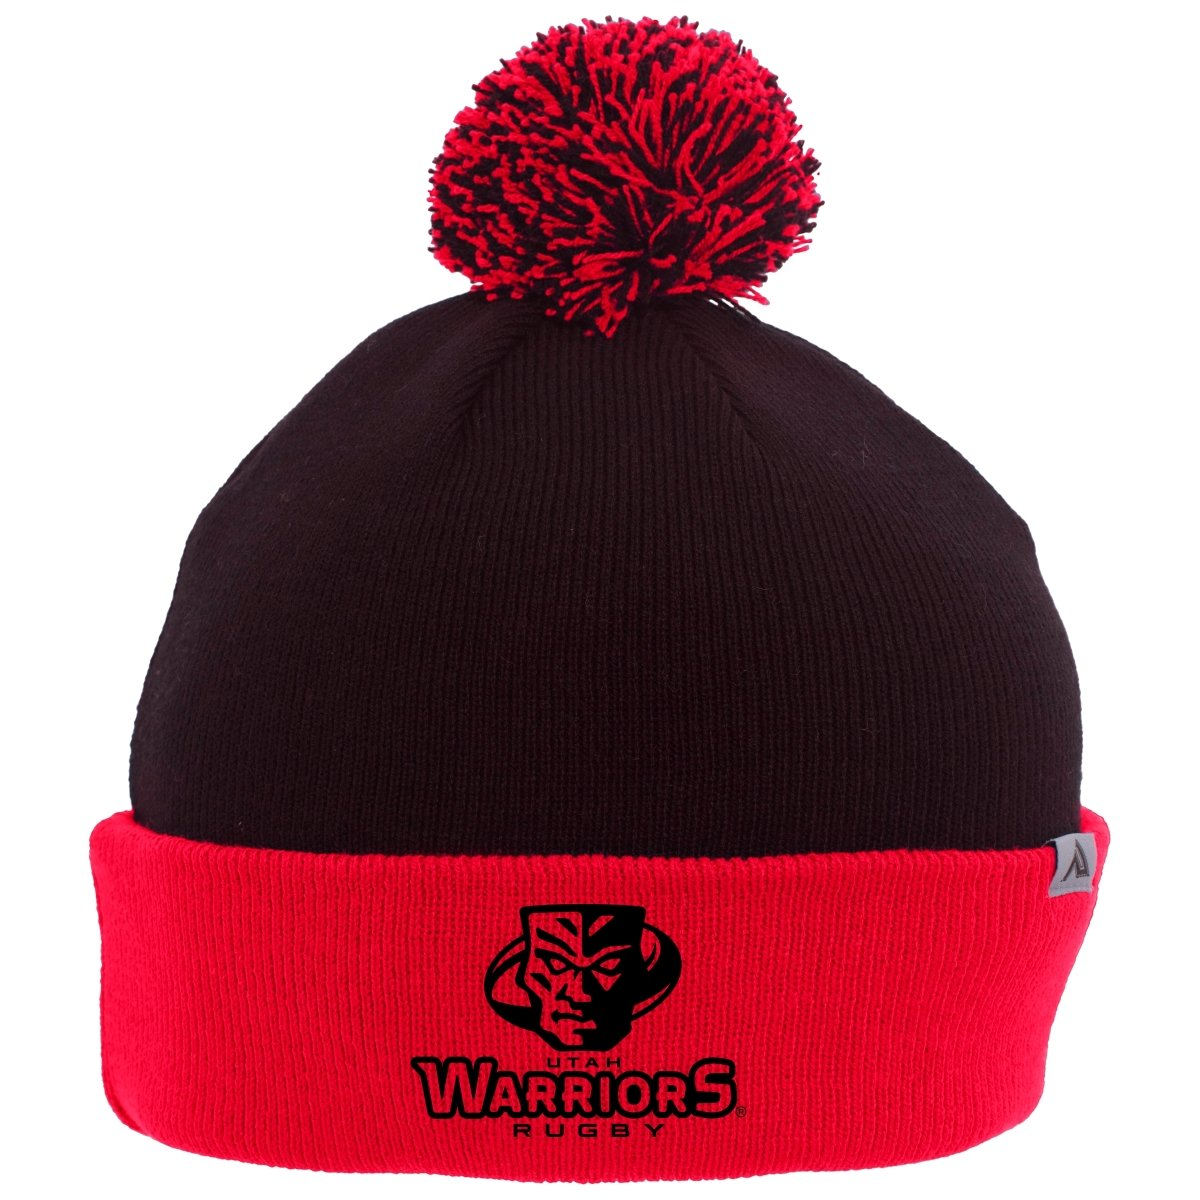 Utah Warriors 2021 Beanie - SHOPMLR.COM